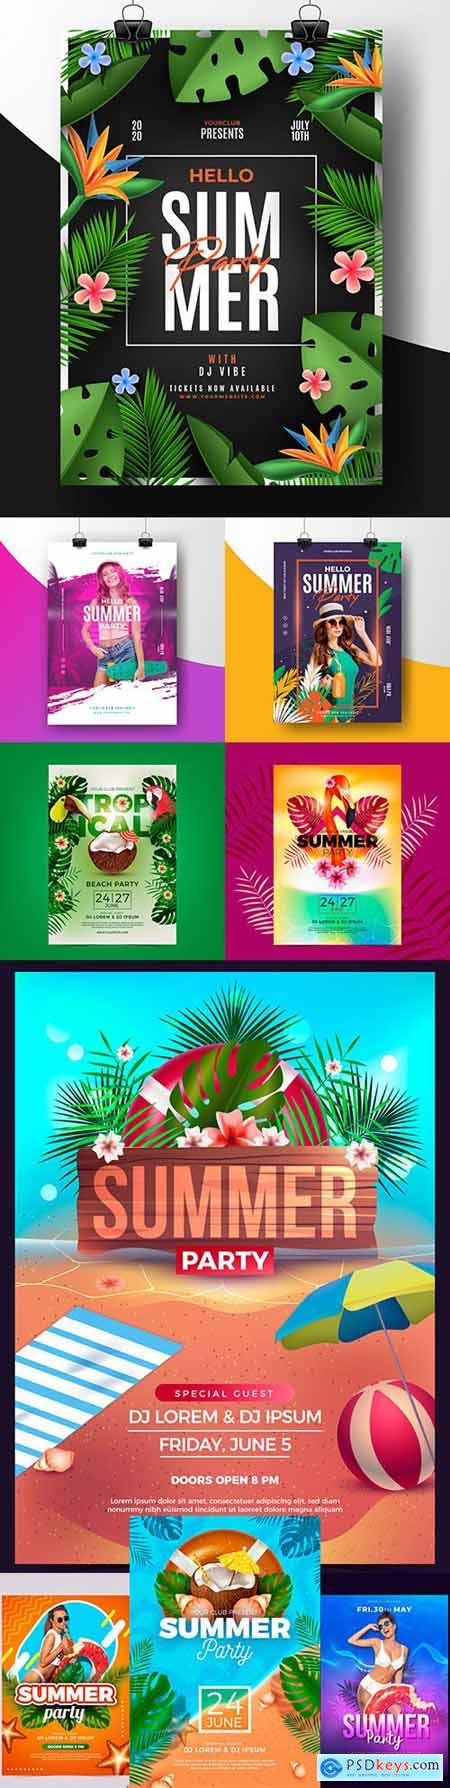 Summer tropical party with illustrations poster template